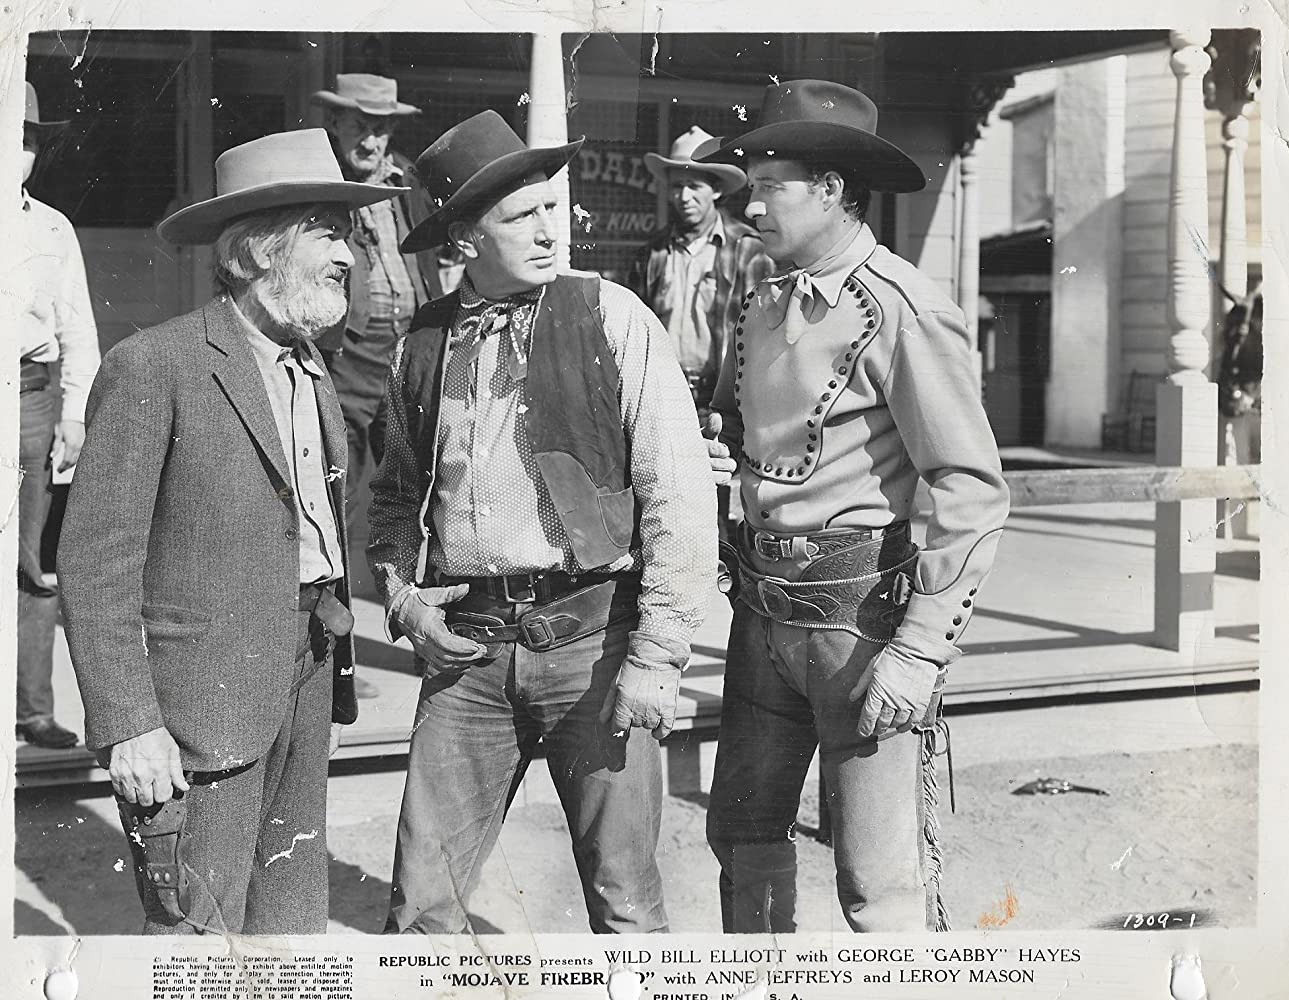 Art Dillard, Bill Elliott, Bud Geary, George 'Gabby' Hayes, and Robert Milasch in Mojave Firebrand (1944)